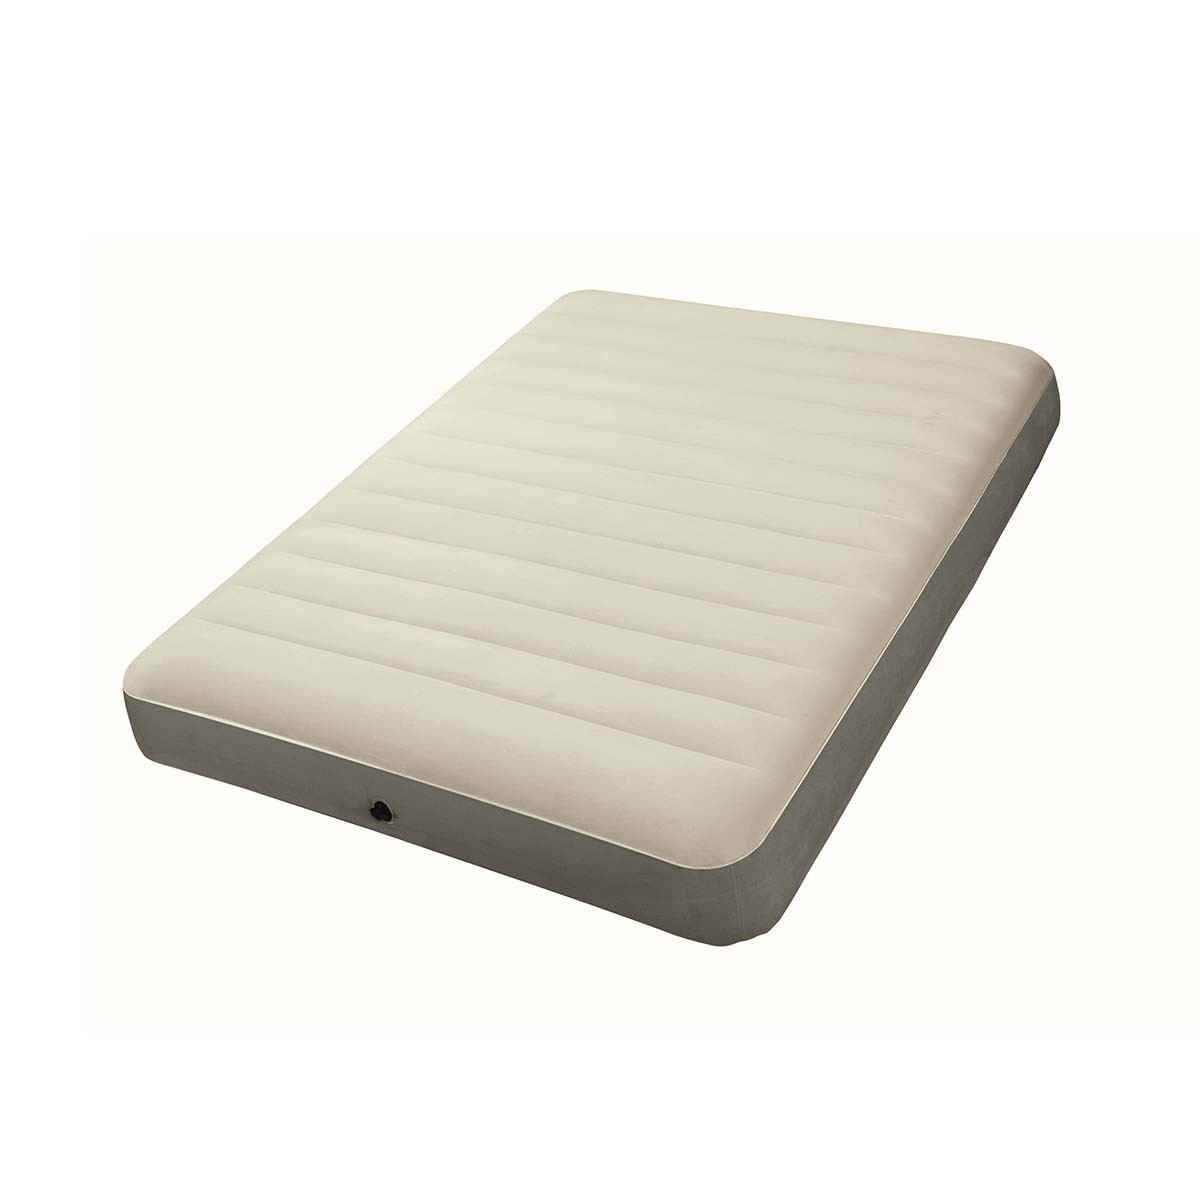 matelas 2 places matelas gonflable 2 places intex downy classic xl matelas gonflable 2 places. Black Bedroom Furniture Sets. Home Design Ideas